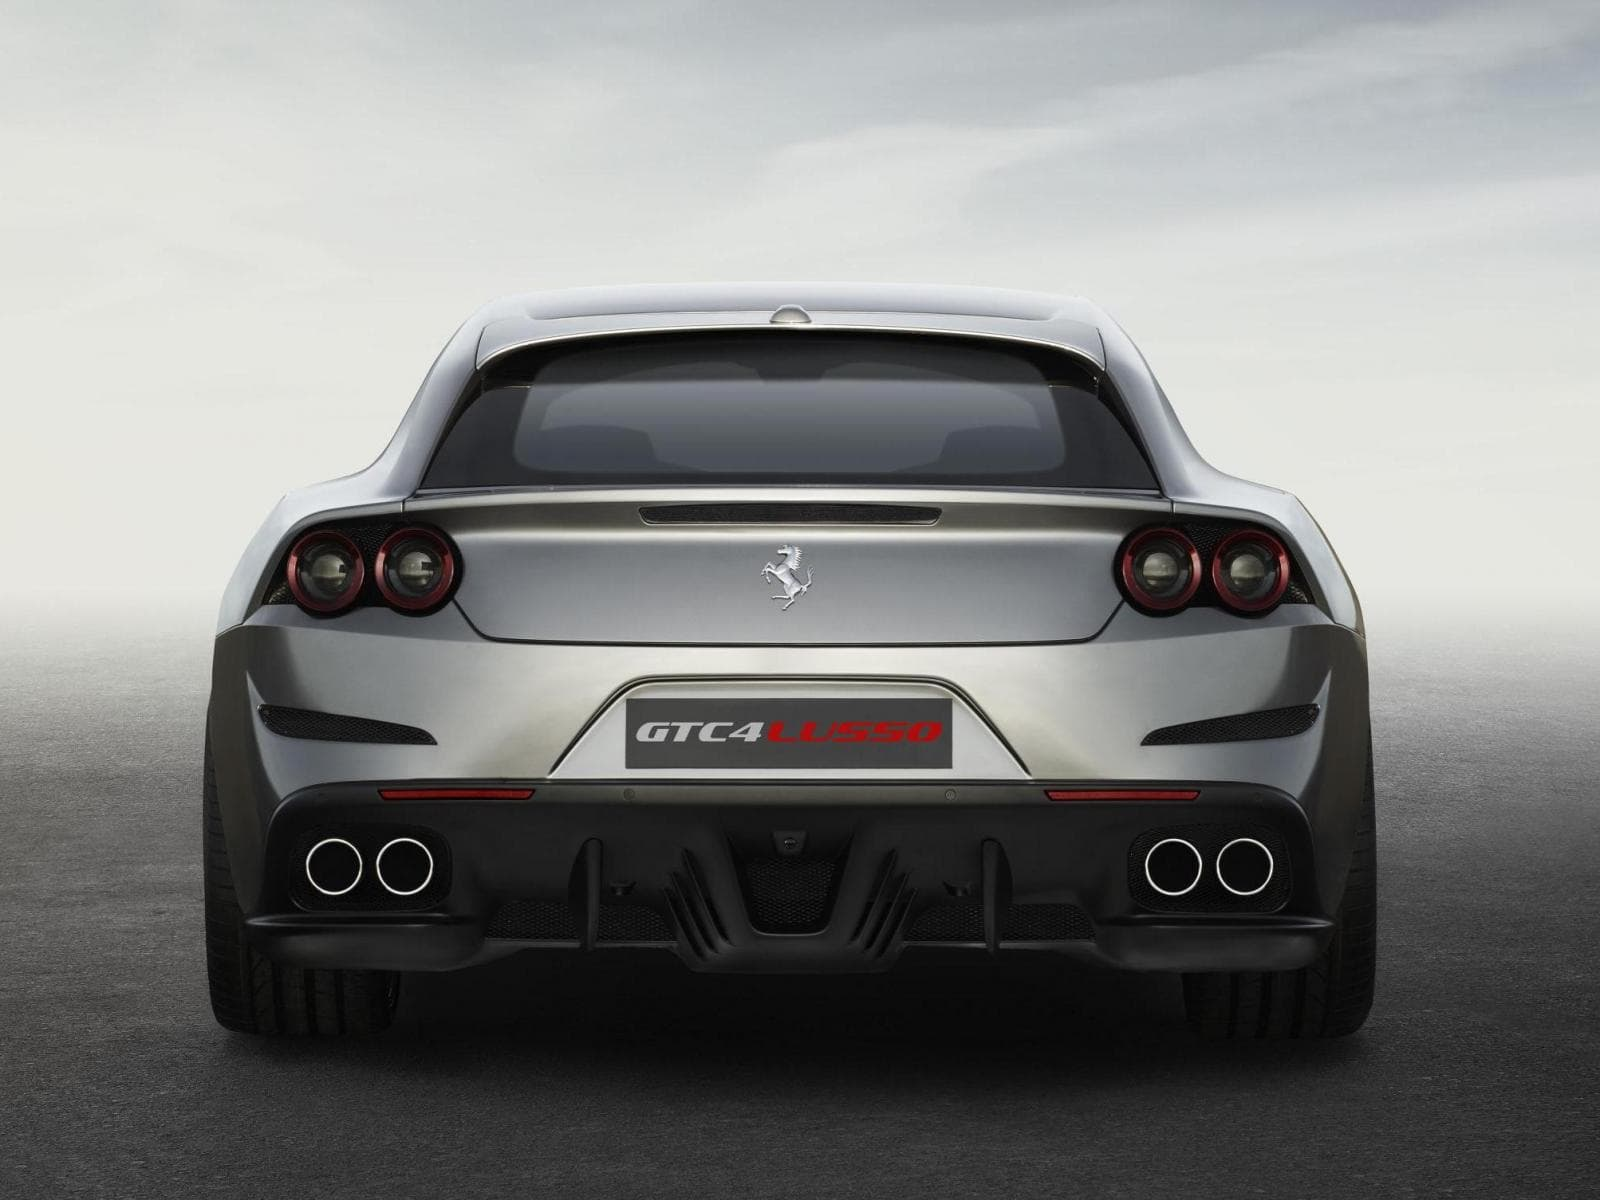 free insurance ferrari wallpapers newcars download lusso